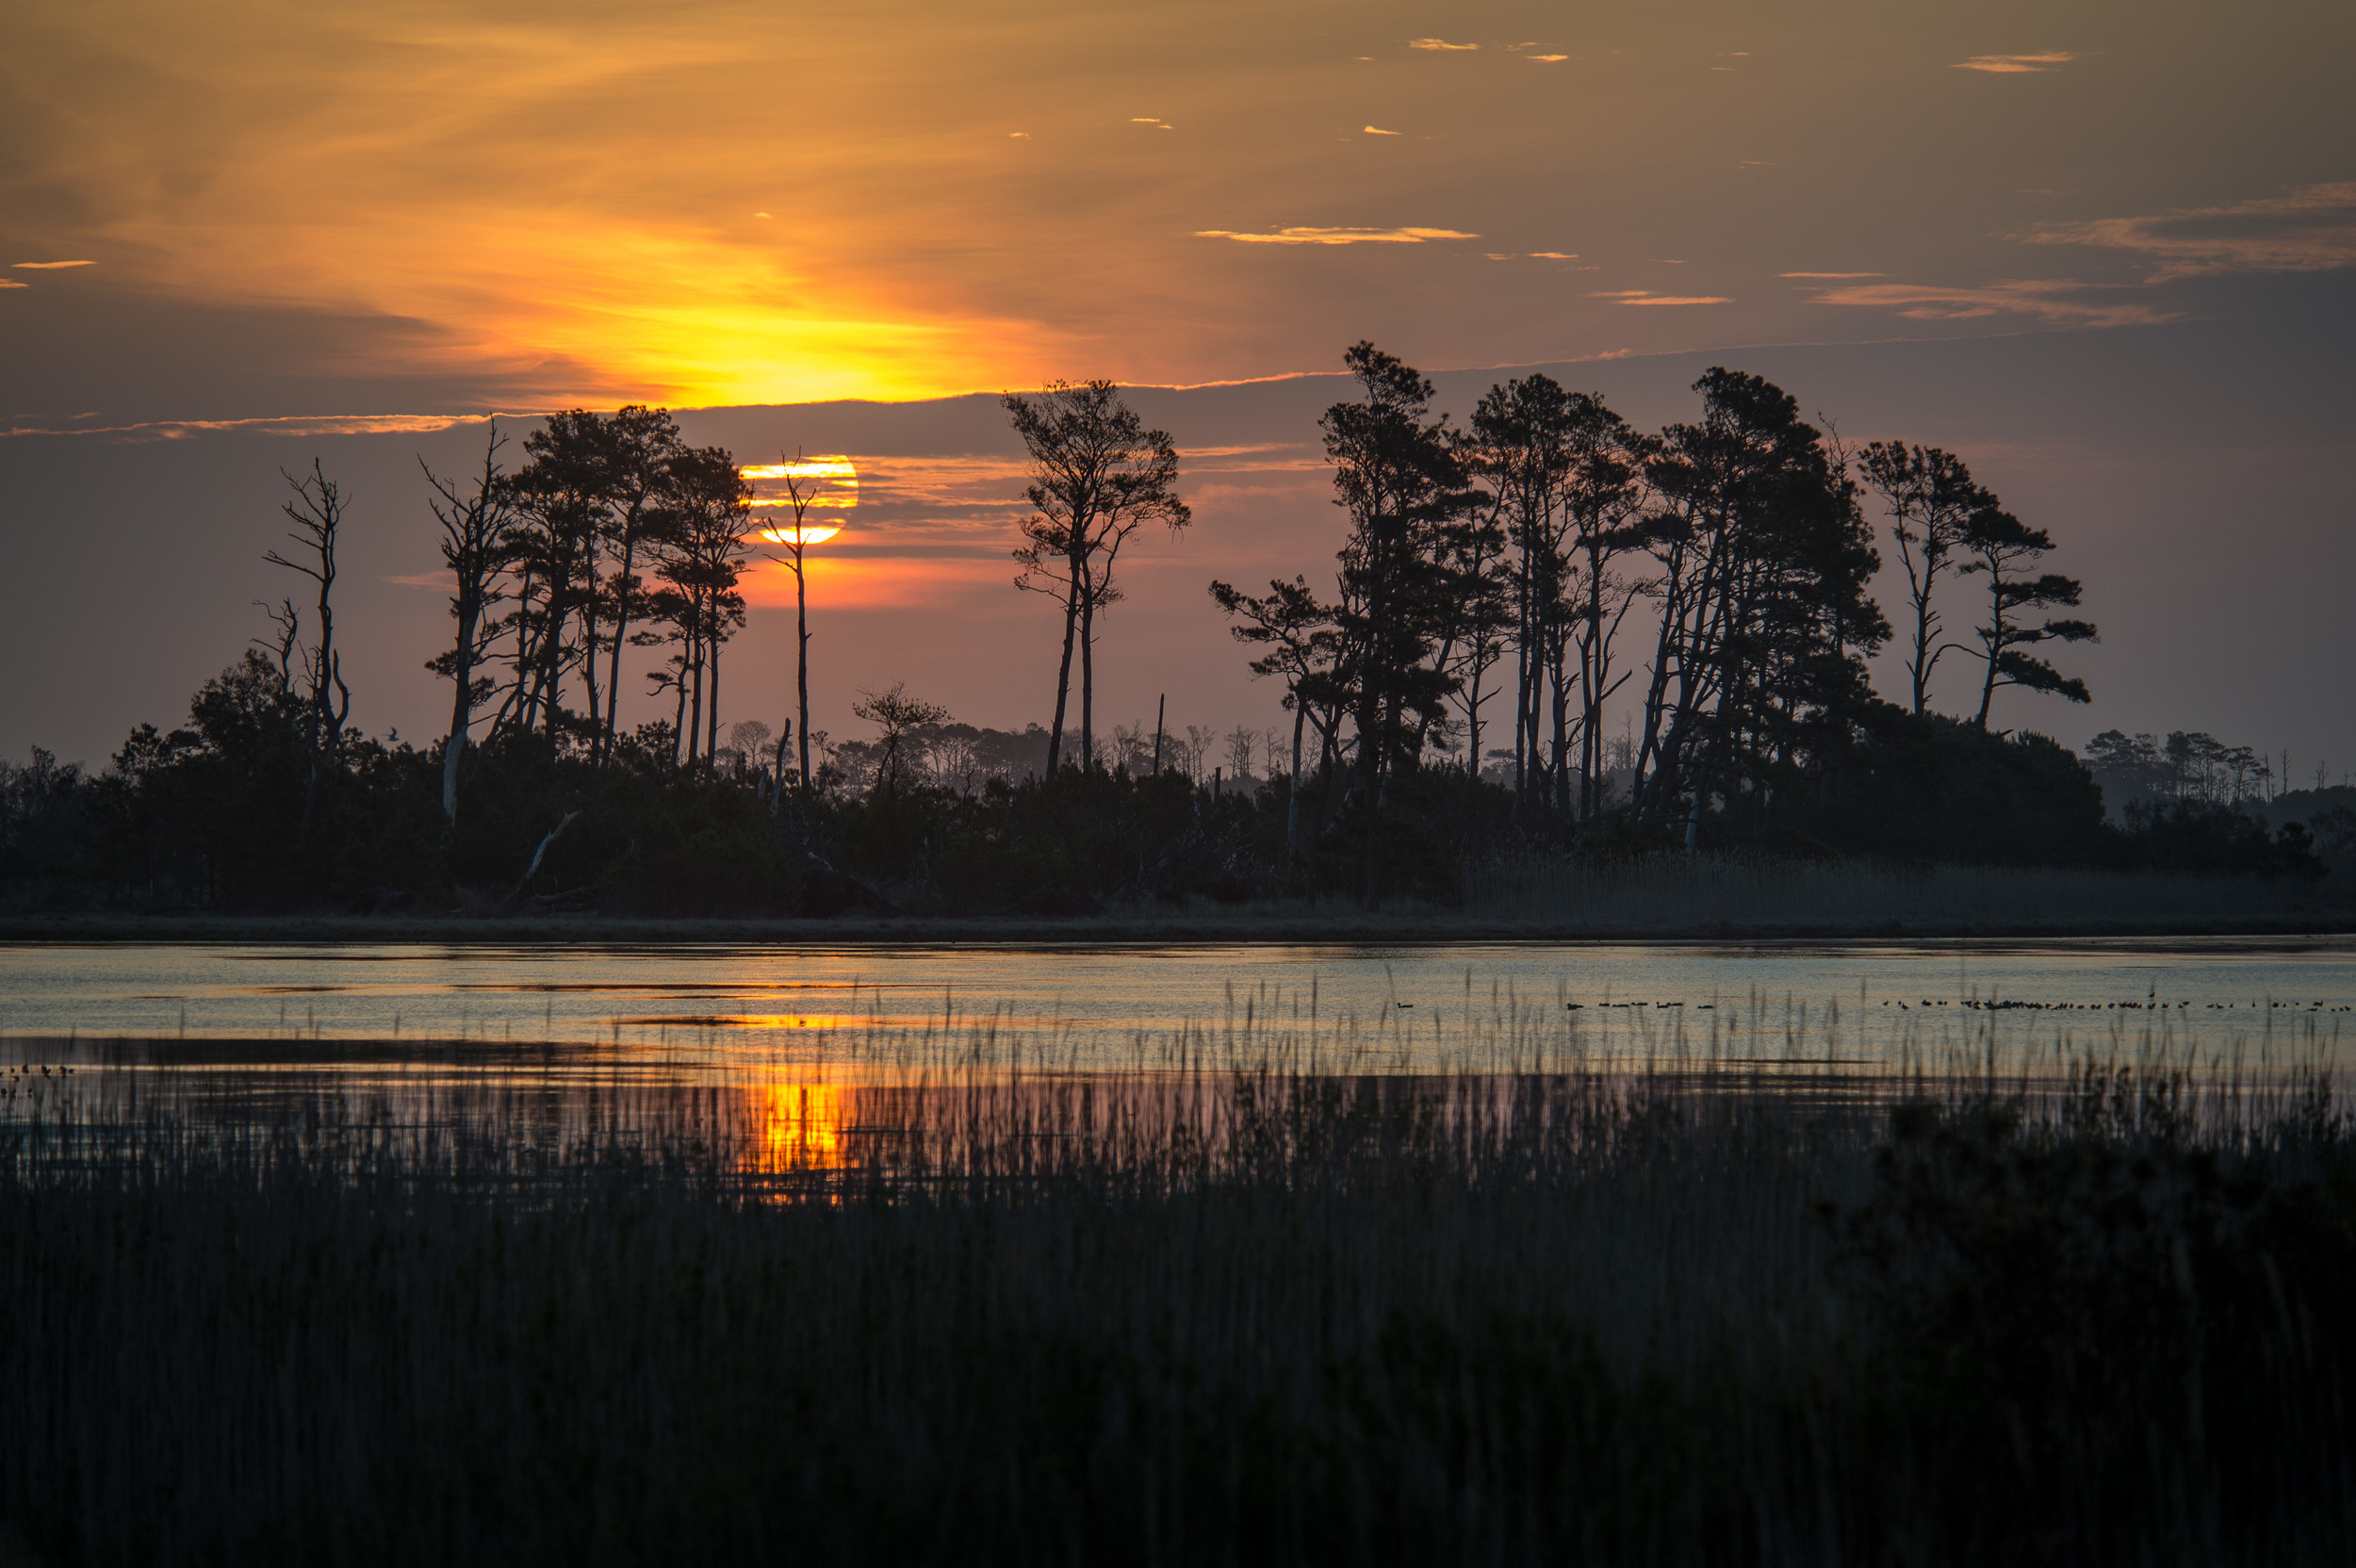 Chincoteague sunrise. 1/640 @ f5.3, ISO 200. Nikon D4S, 80-400mm at 195mm.